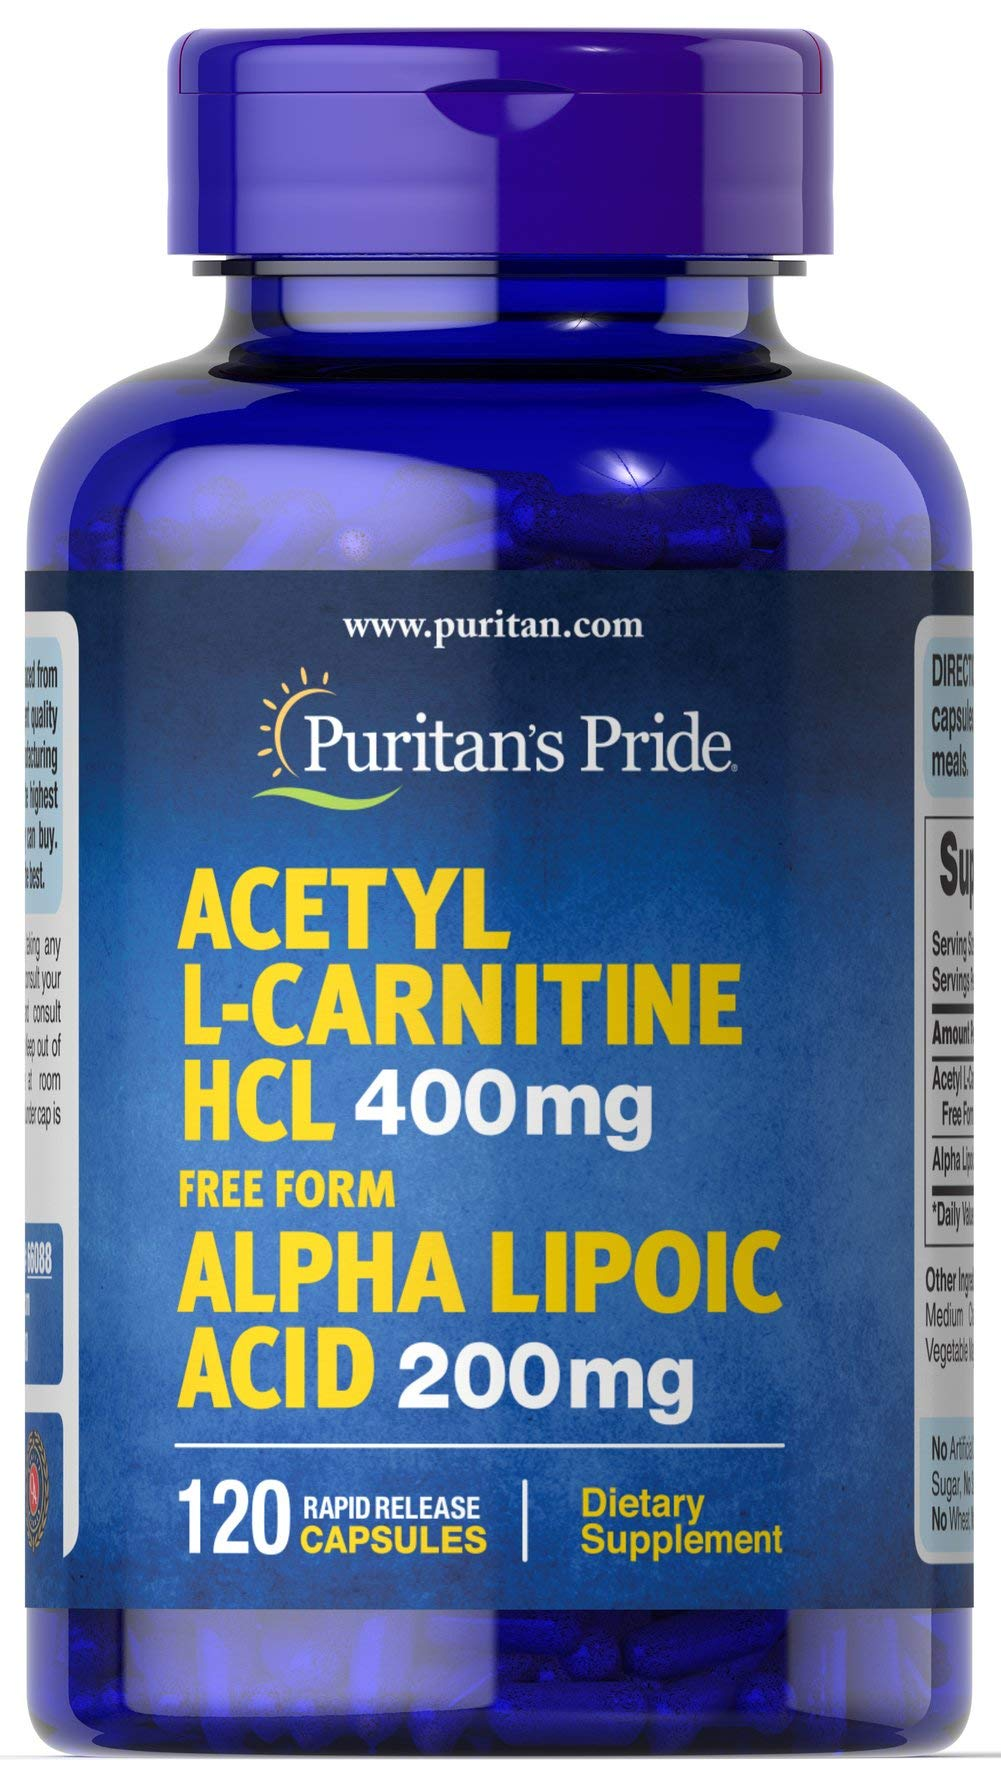 Puritans Pride Acetyl L-carnitine 400 Mg with Alpha Lipoic Acid, 200 Mg, 120 Count by Puritans Pride